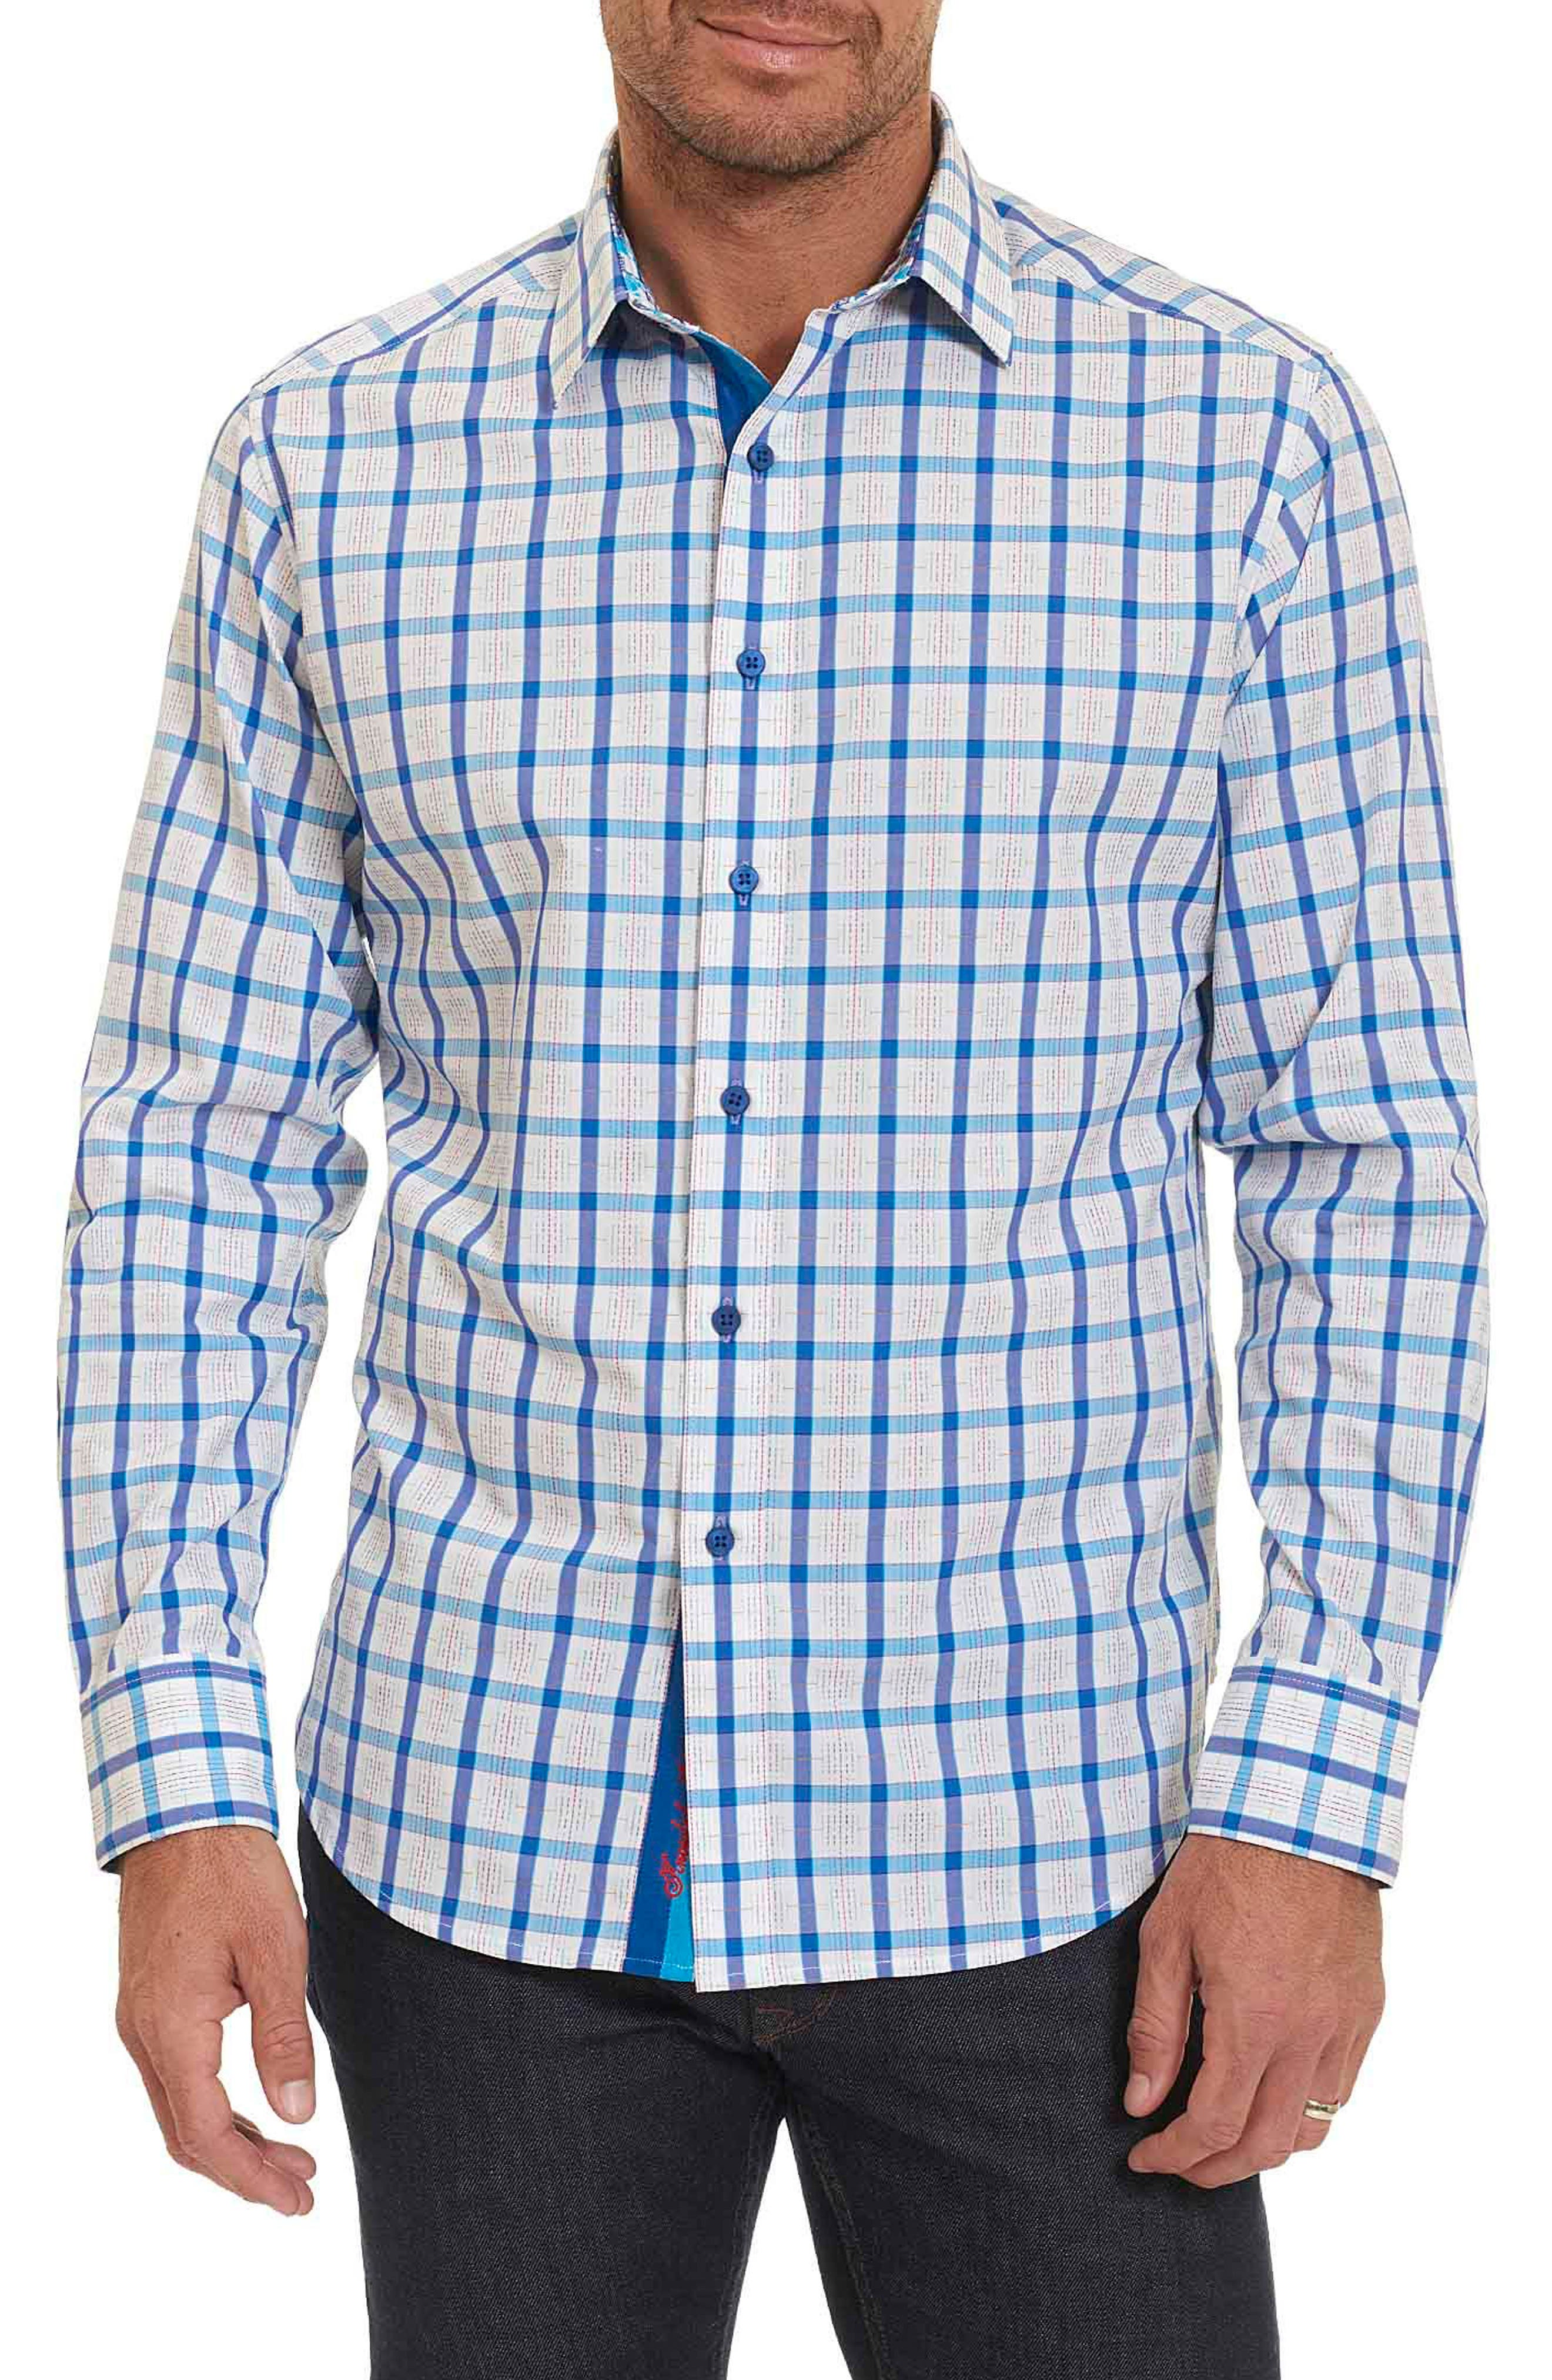 Alternate Image 1 Selected - Robert Graham Classic Fit Check Sport Shirt (Tall)